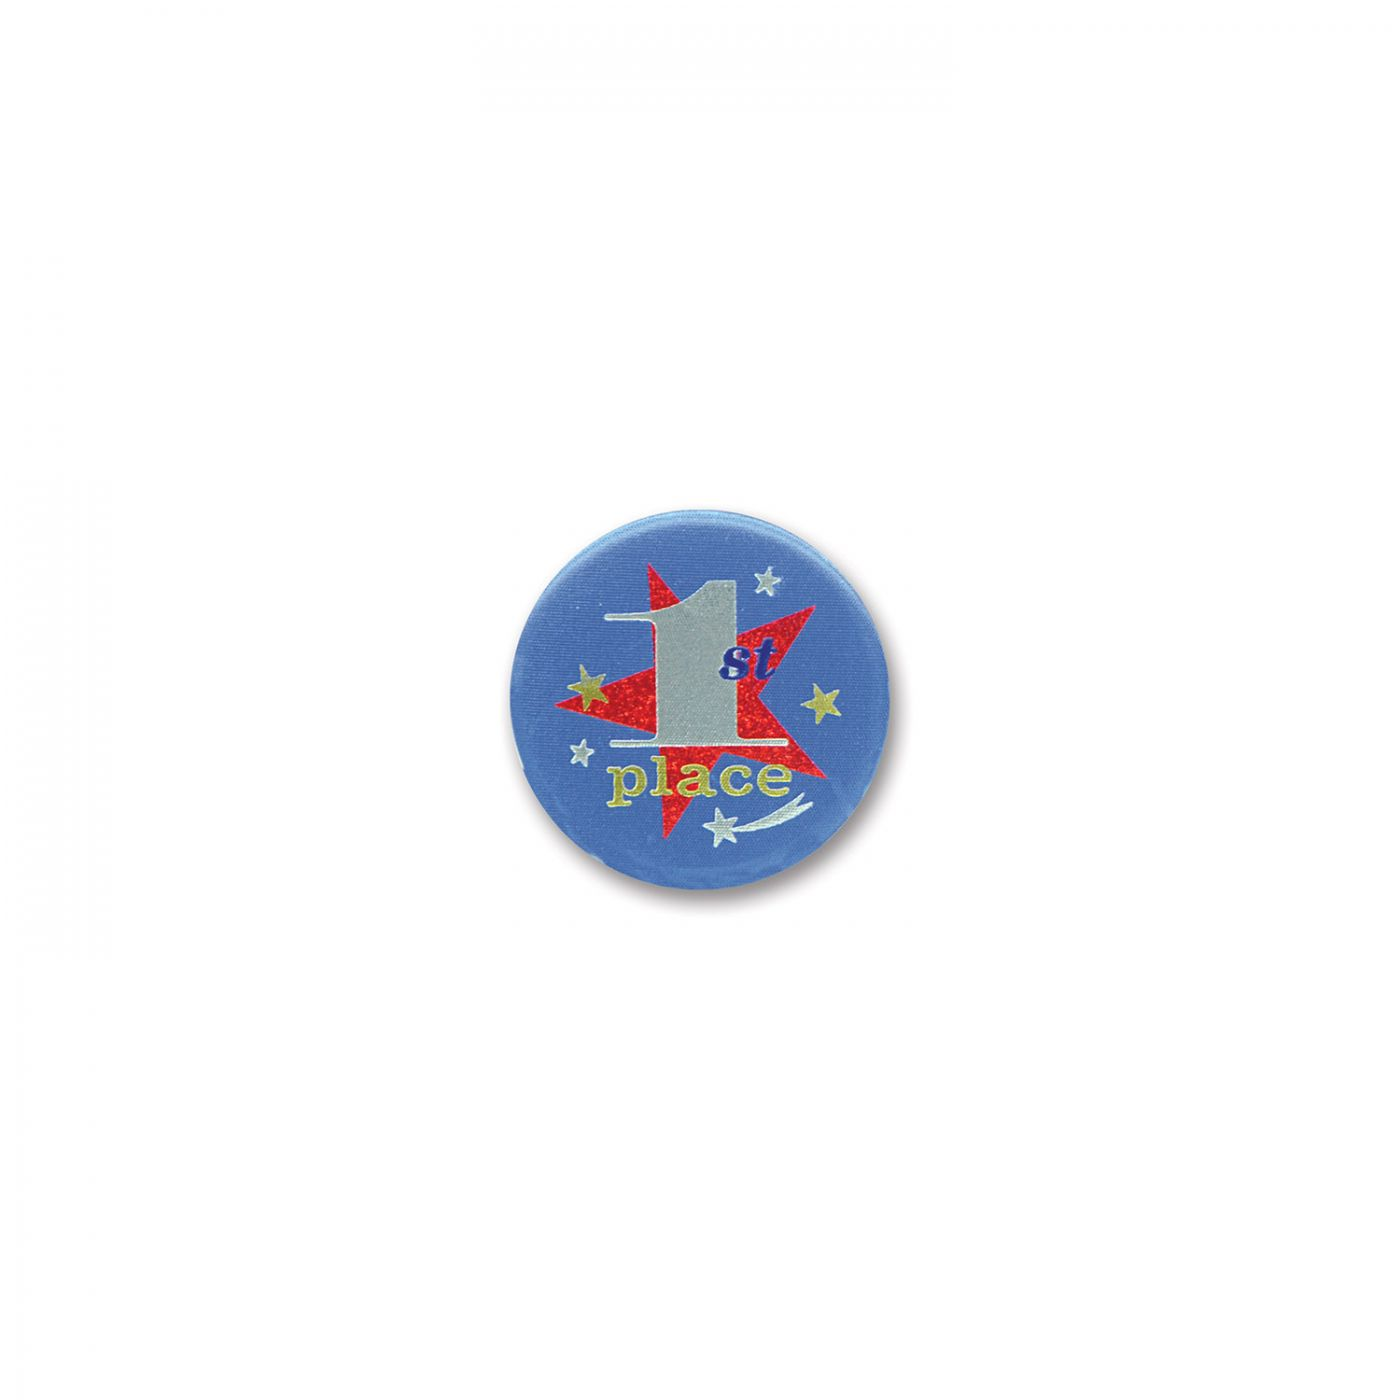 Image of 1st Place Satin Button (6)